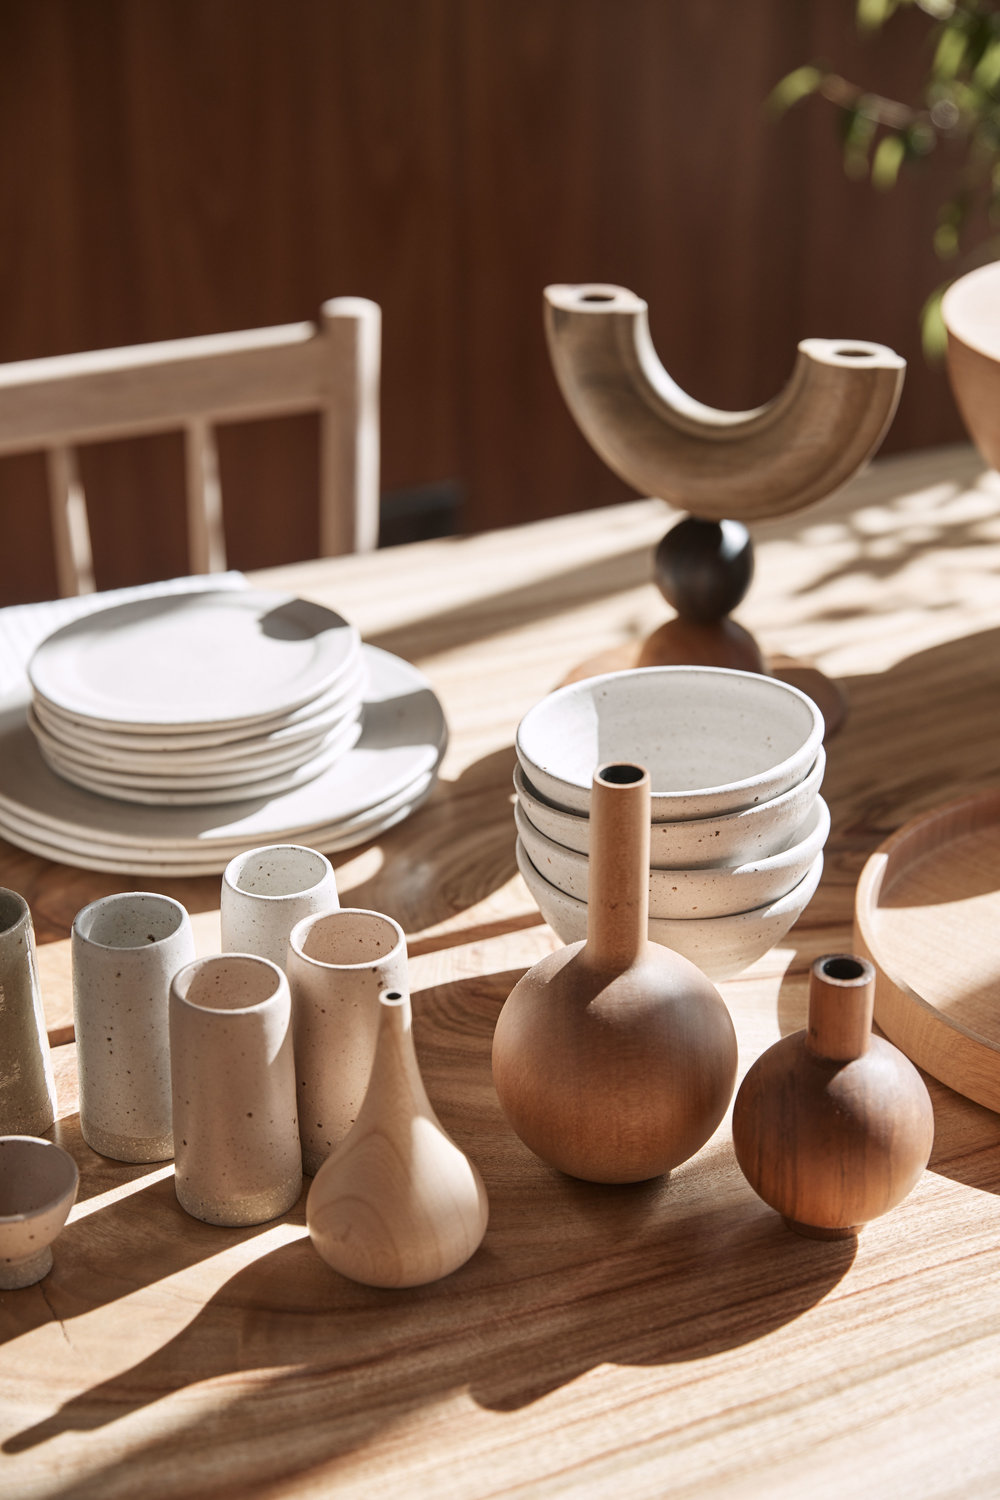 Ceramics by  Wingnut & Co.  and wooden objects by  Tara Burke . Photo – Terence Chin.